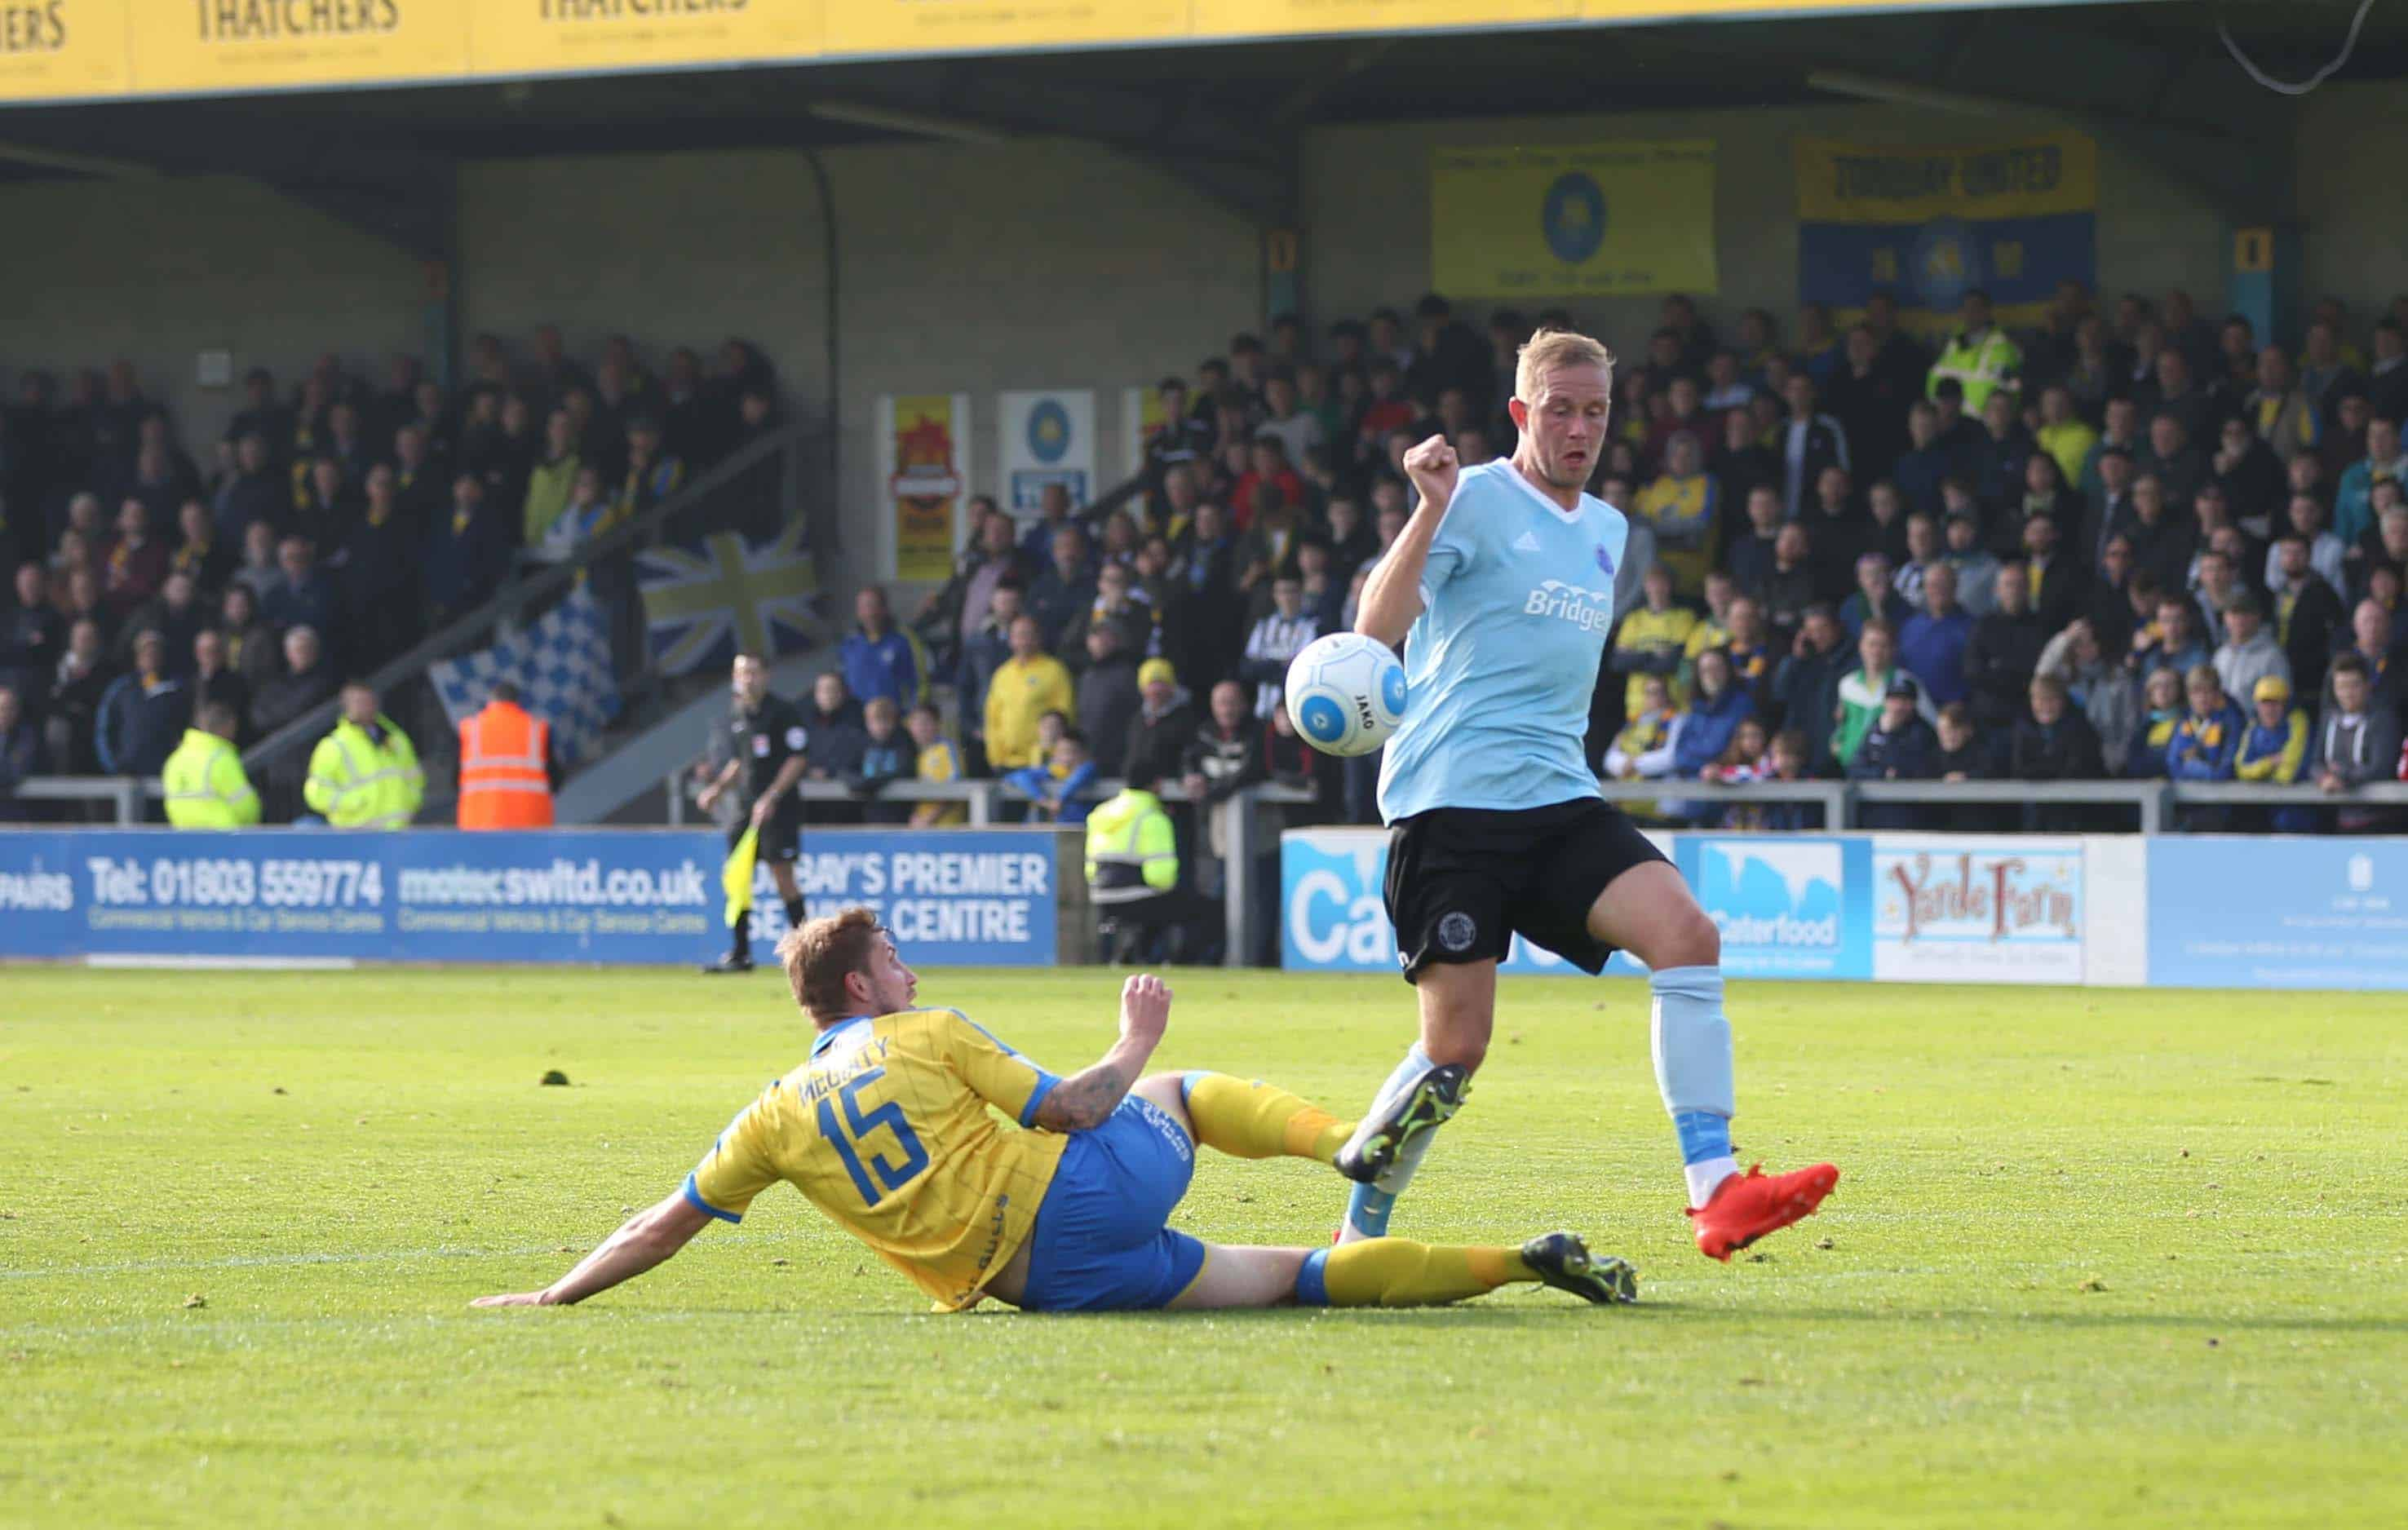 http://www.theshots.co.uk/wp-content/uploads/2016/10/torquay-v-atfc-072.jpg